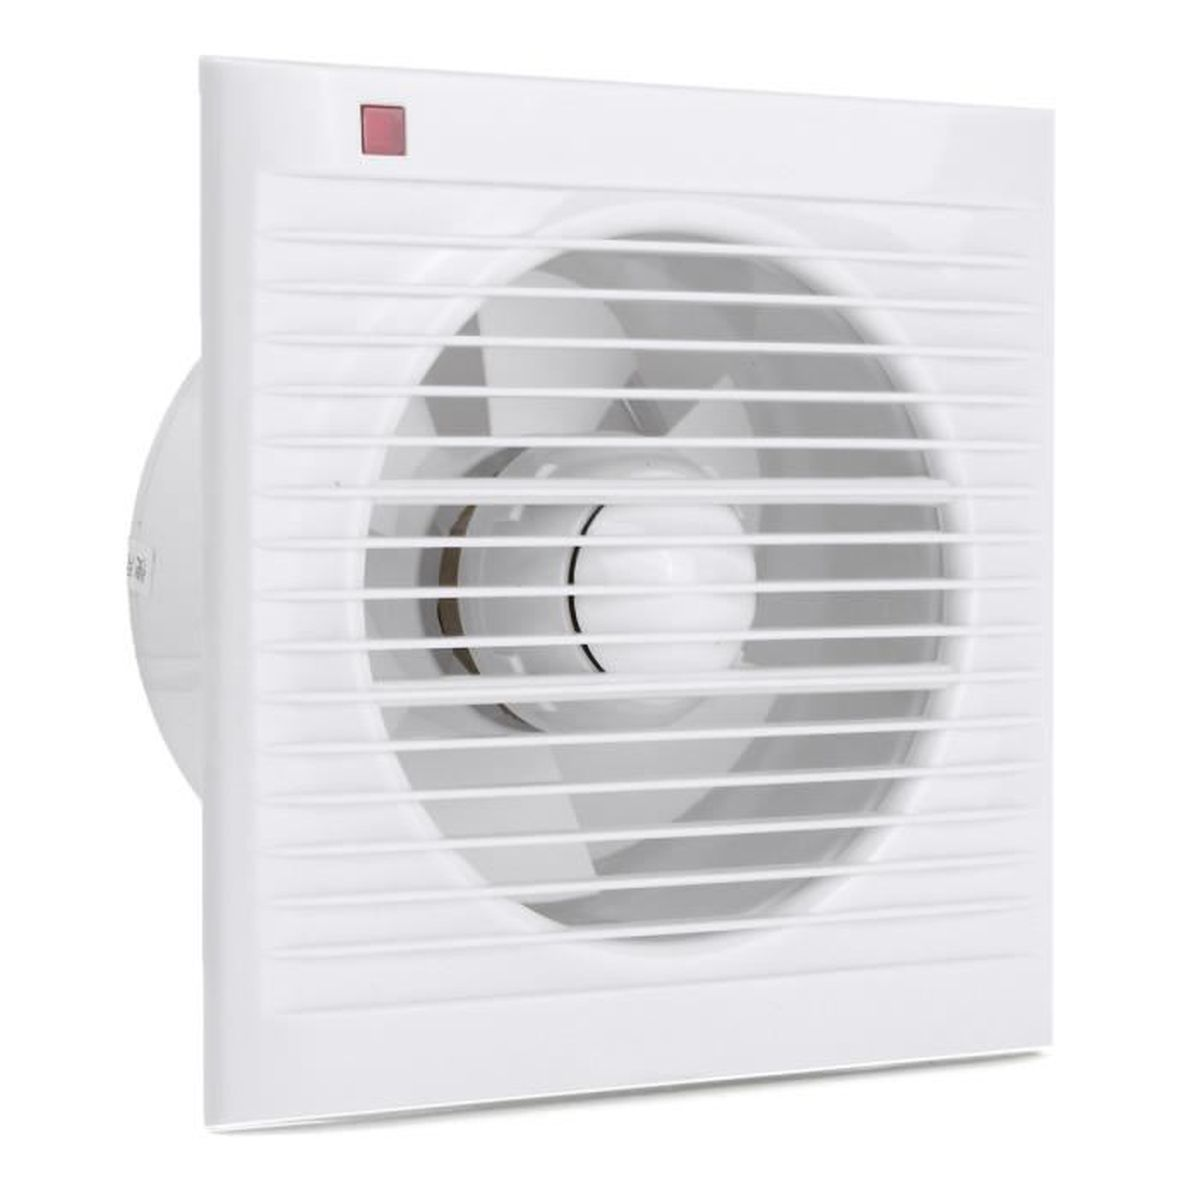 Tempsa ventilateur ventilation d 39 extraction fan pr - Ventilateur de cuisine ...